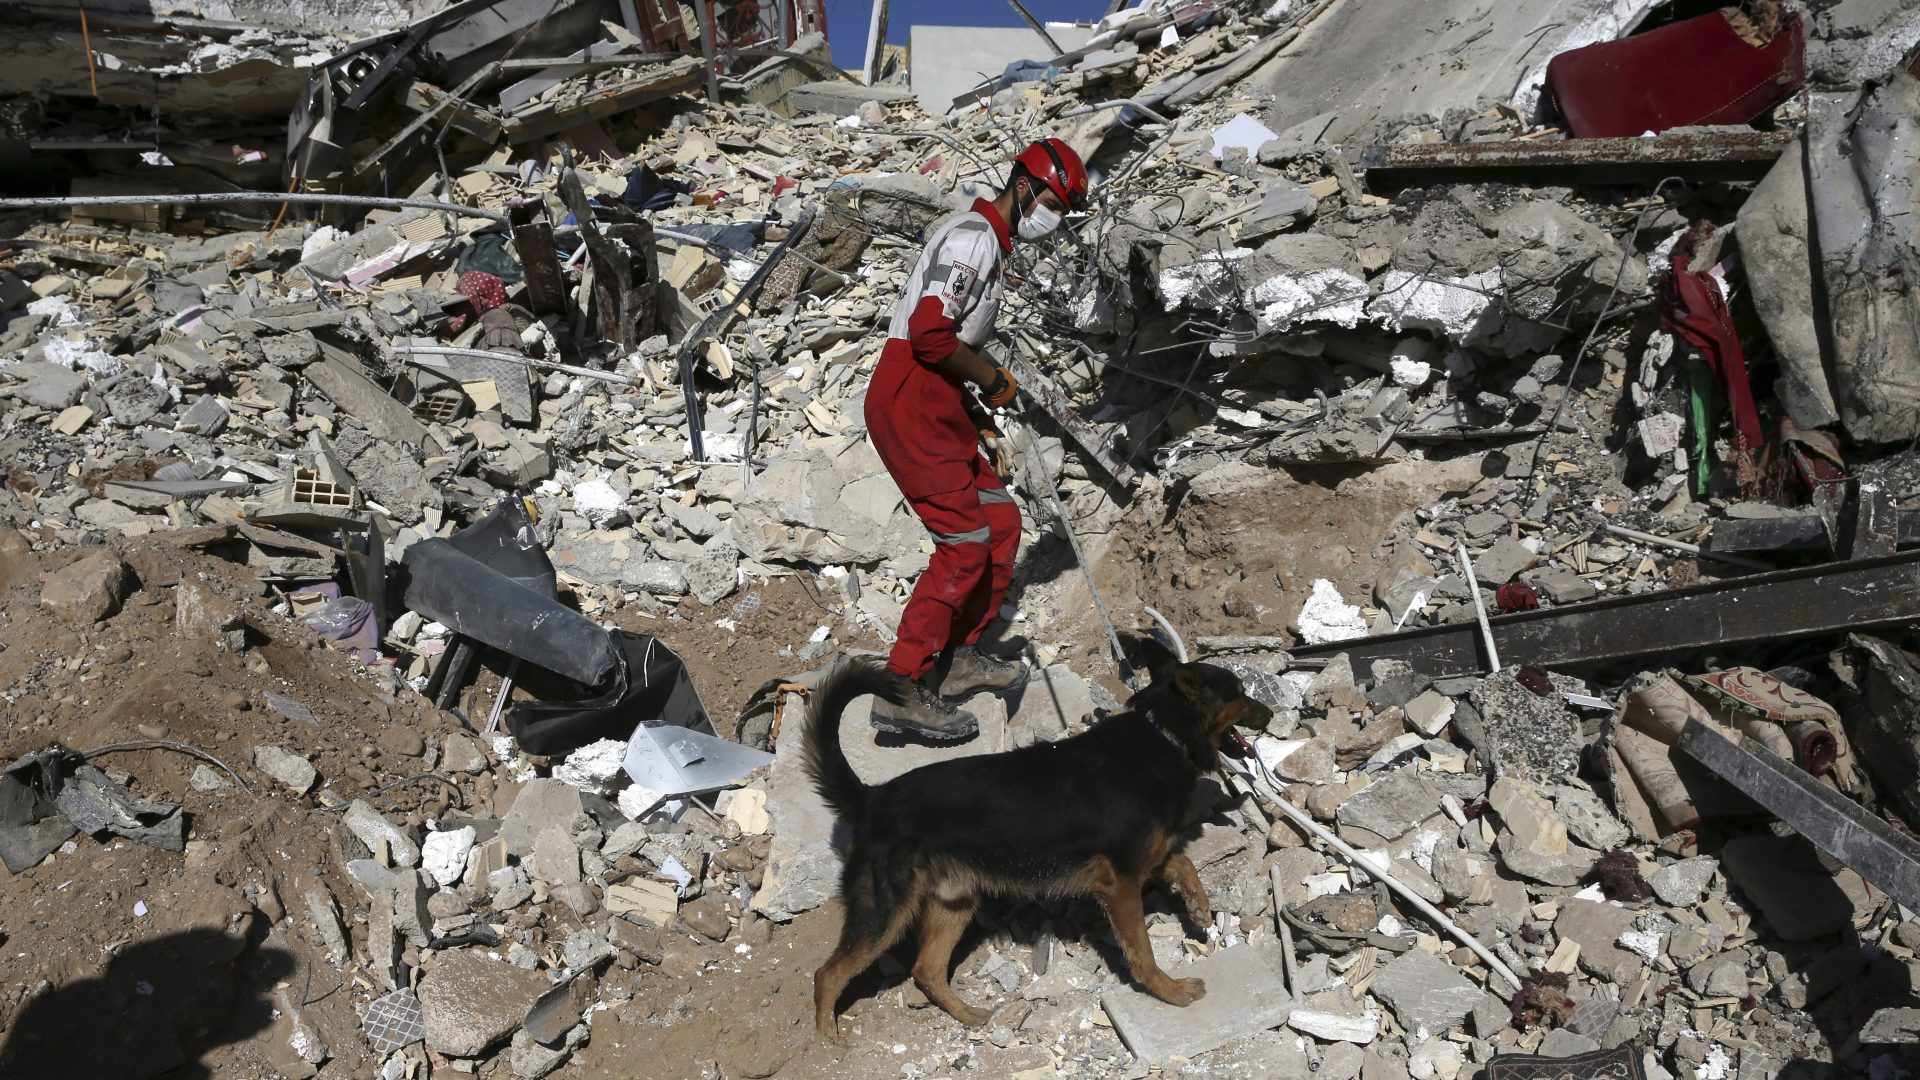 A rescue worker searches the debris with his sniffing dog